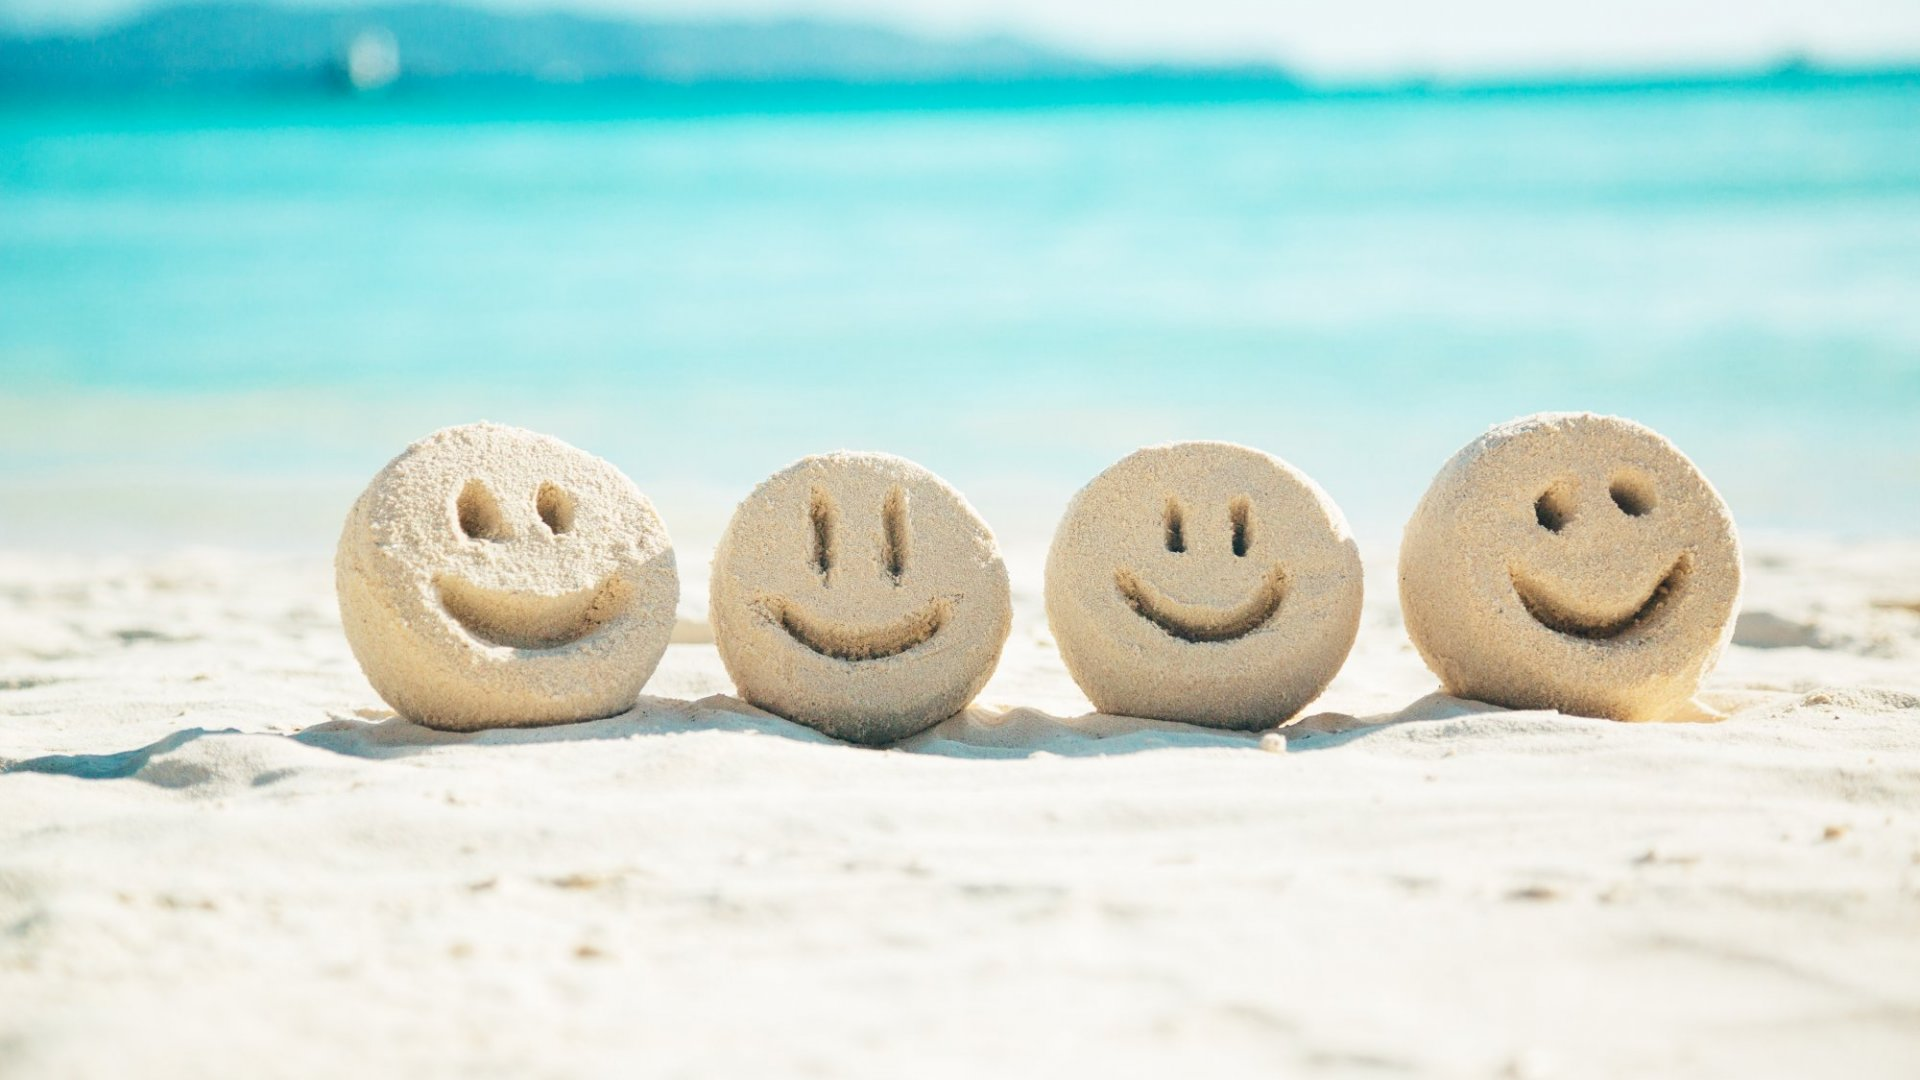 You're Looking for Happiness in All the Wrong Places, Studies Say